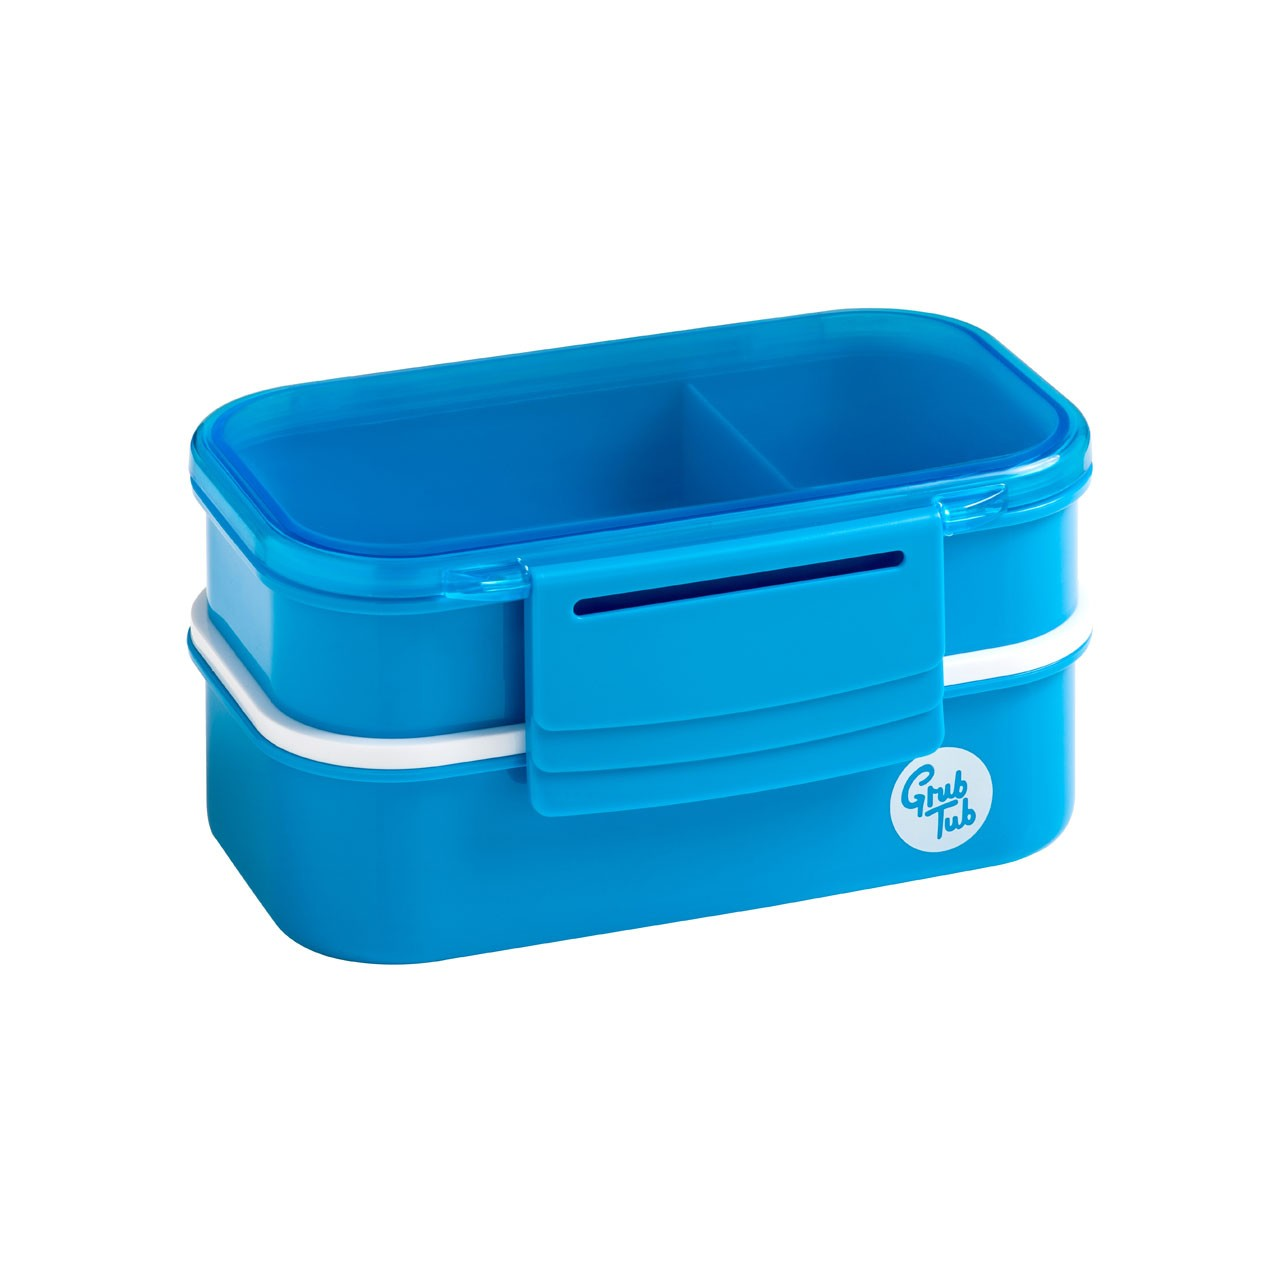 Grub Tub Lunch Box with 2 Containers and Cutlery - Blue